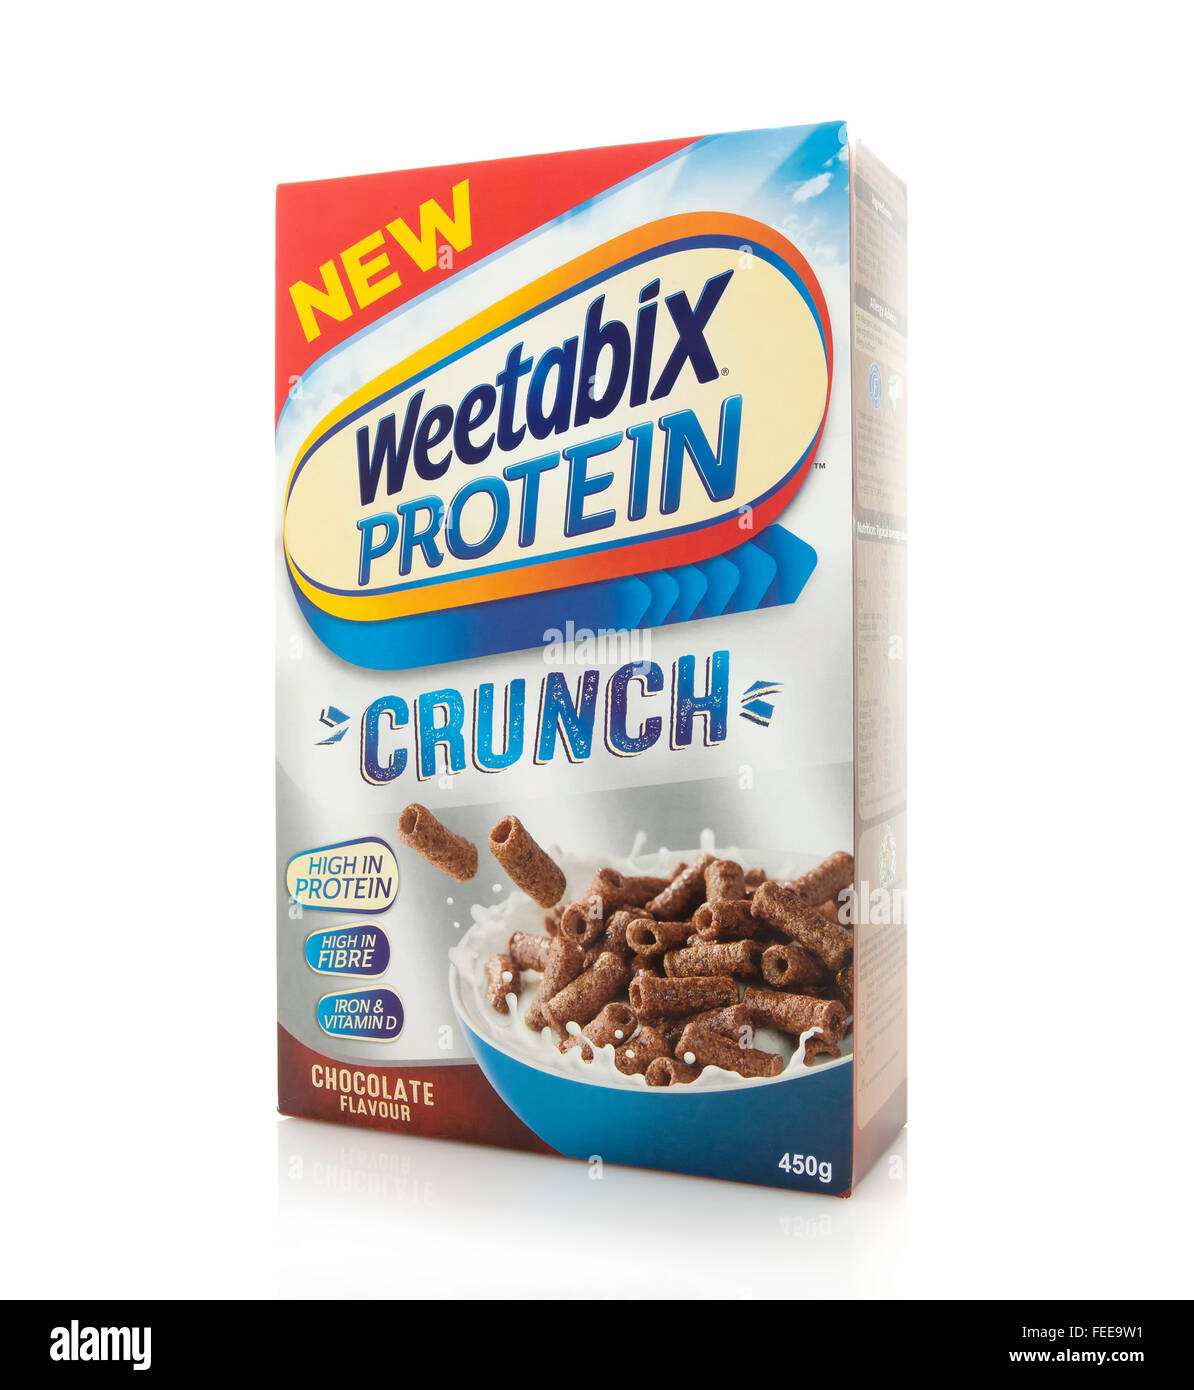 Packet of Weetabix Protein Crunch on a white background. Weetabix is produced by Weetabix Limited in the United - Stock Image